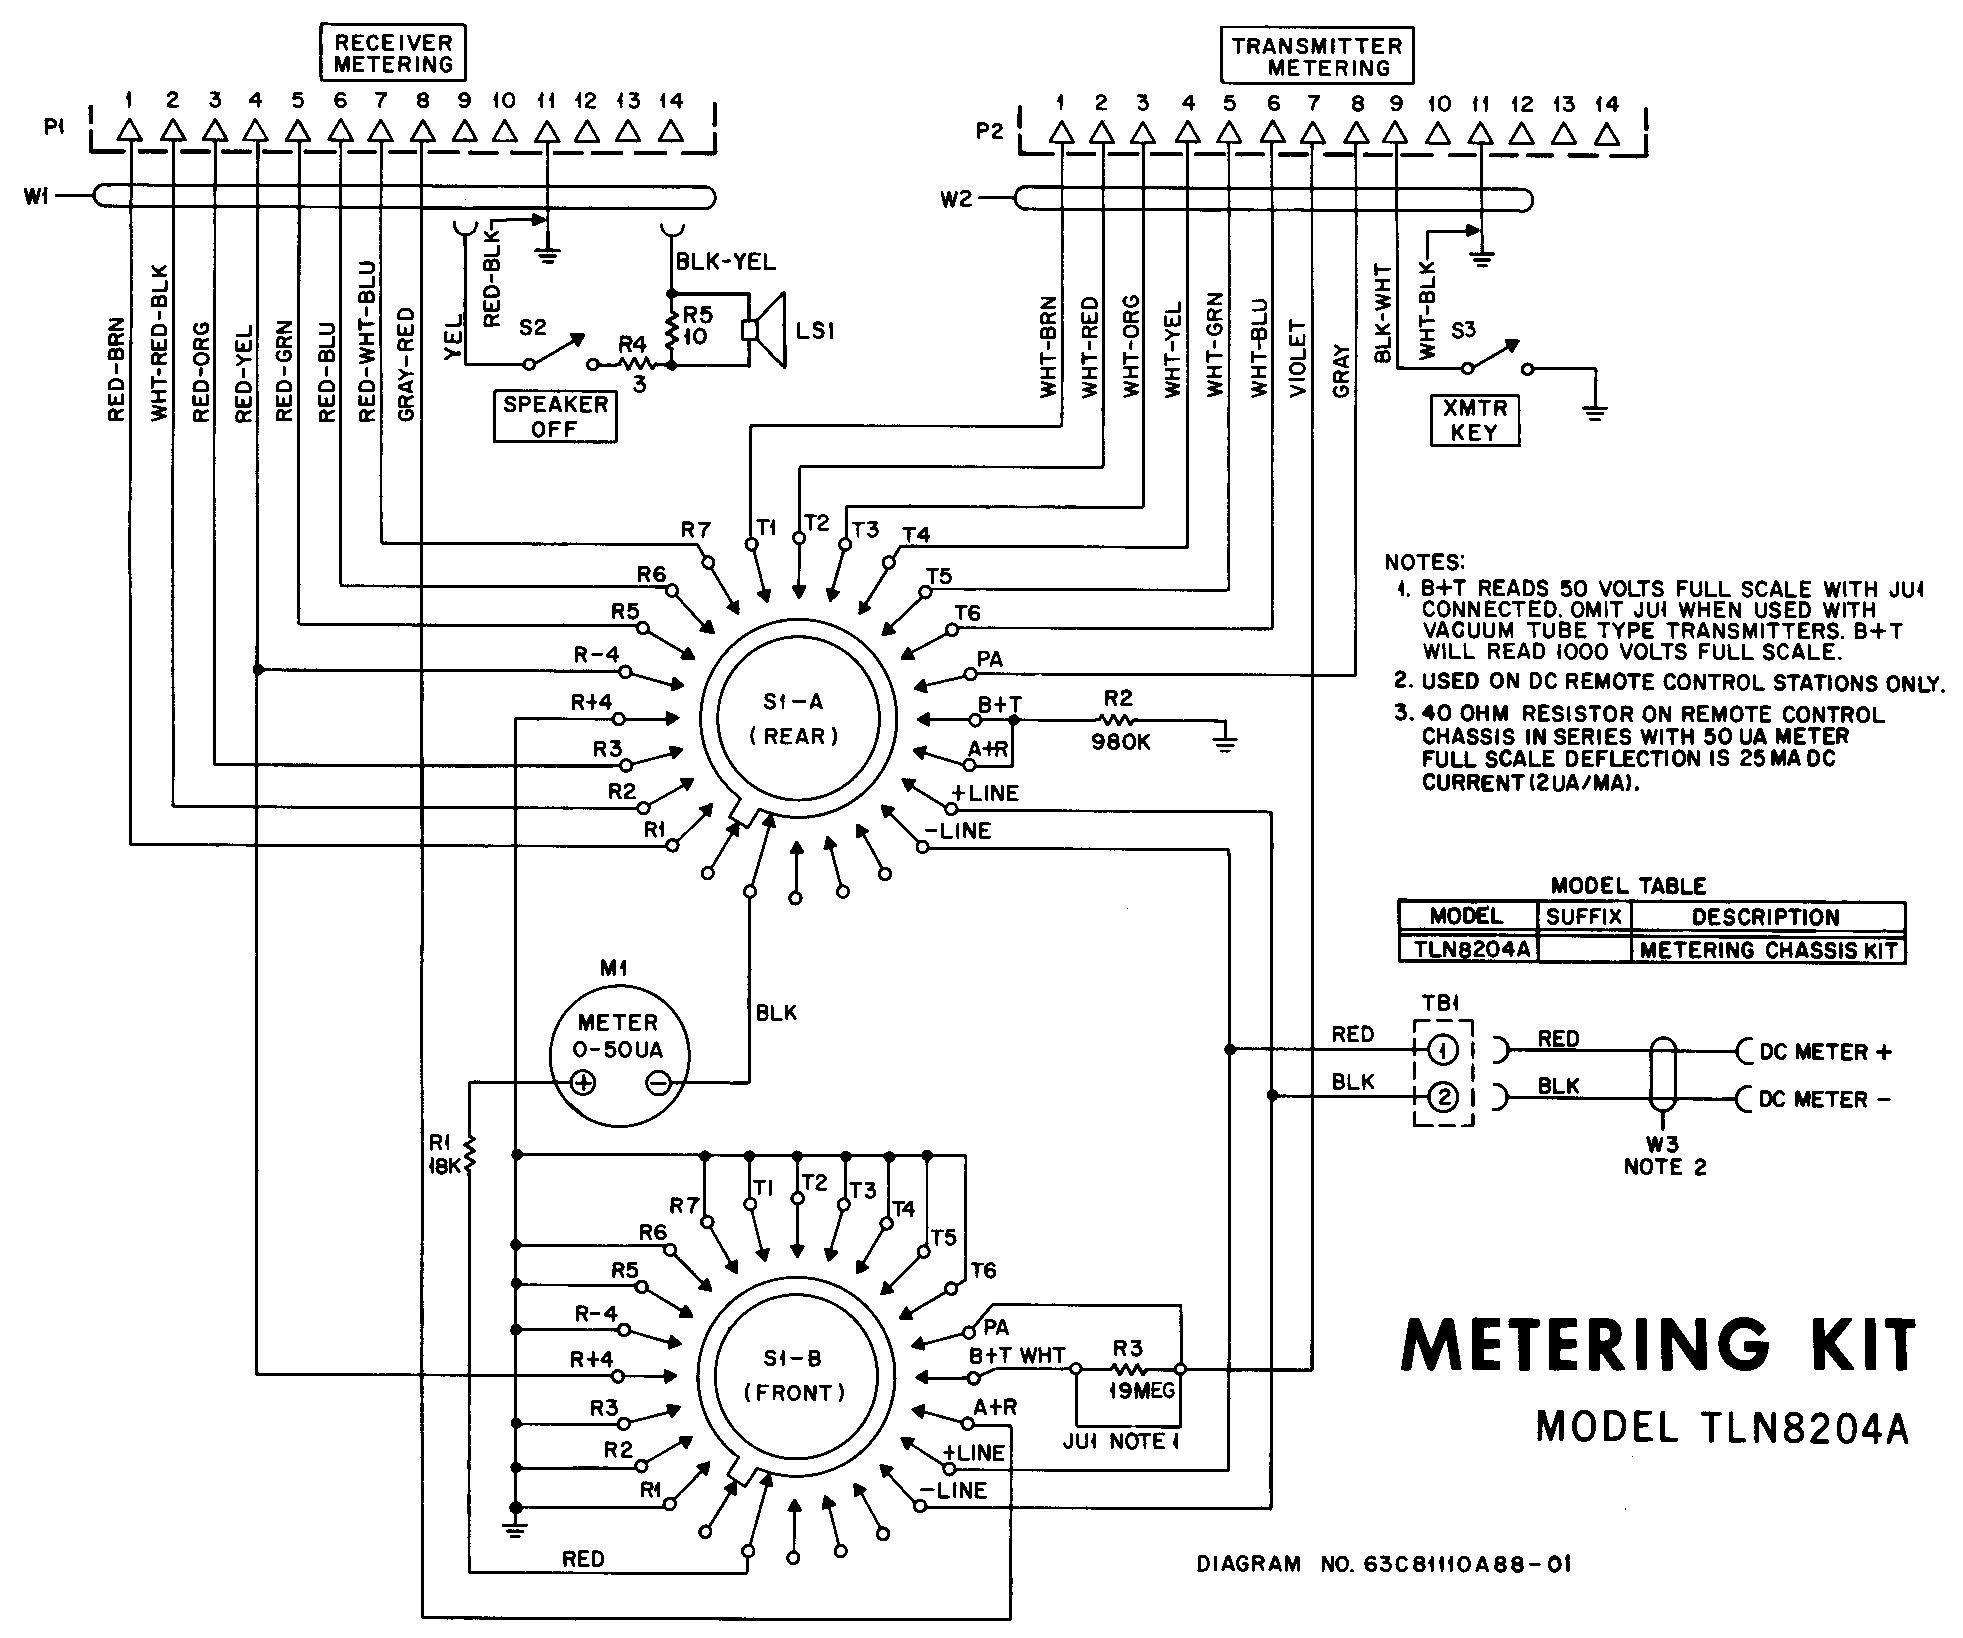 3 pole switch wiring diagram nissan almera n16 position rotary schematic symbol get free image